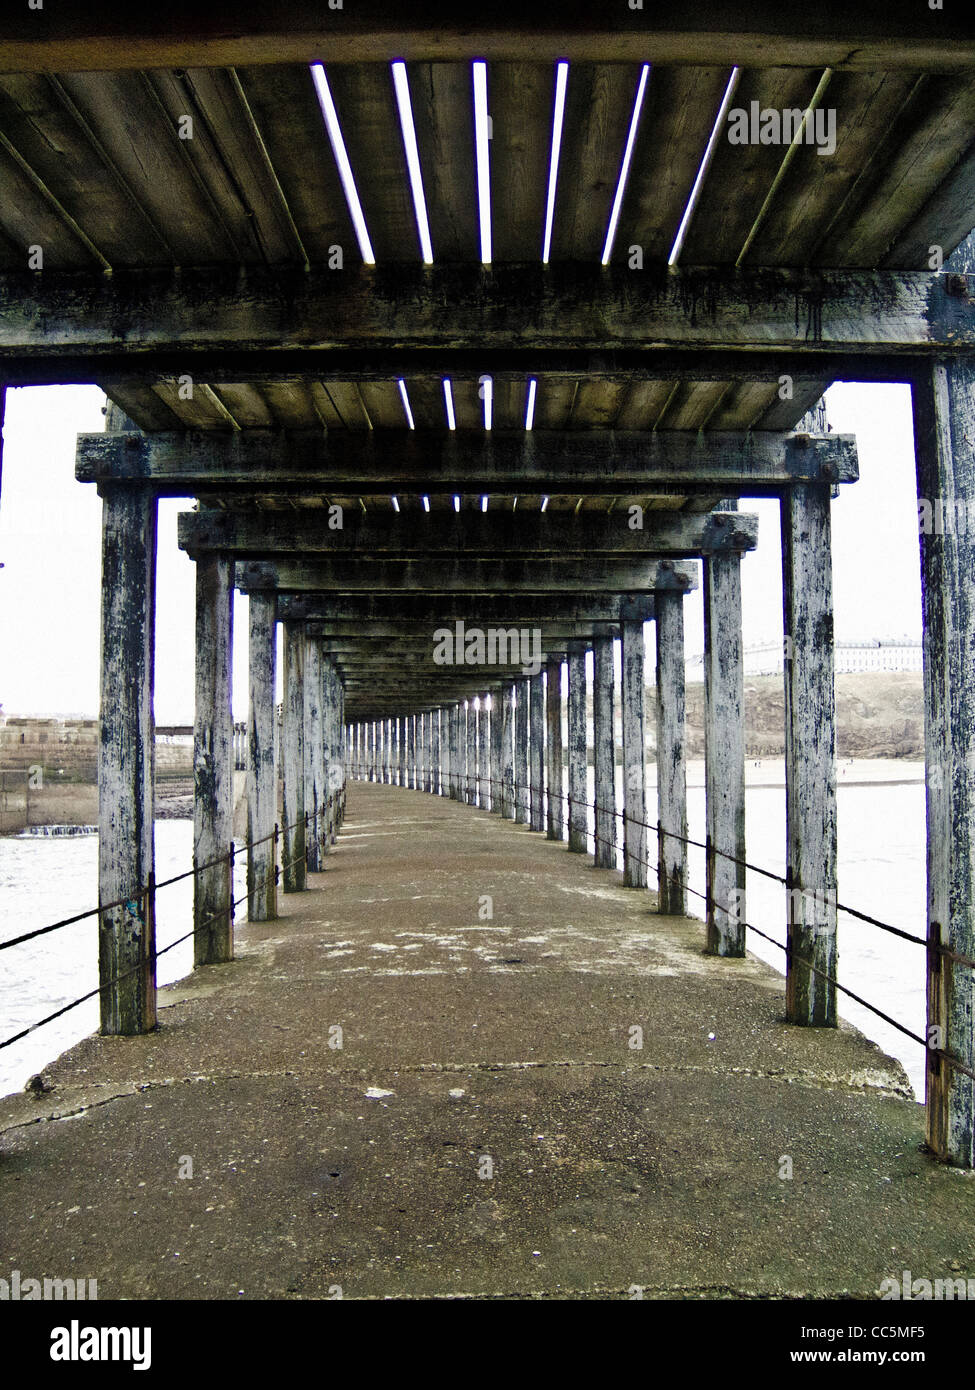 Weathered wooden beams on underneath of harbour pier at Whitby, North Yorkshire, UK. - Stock Image